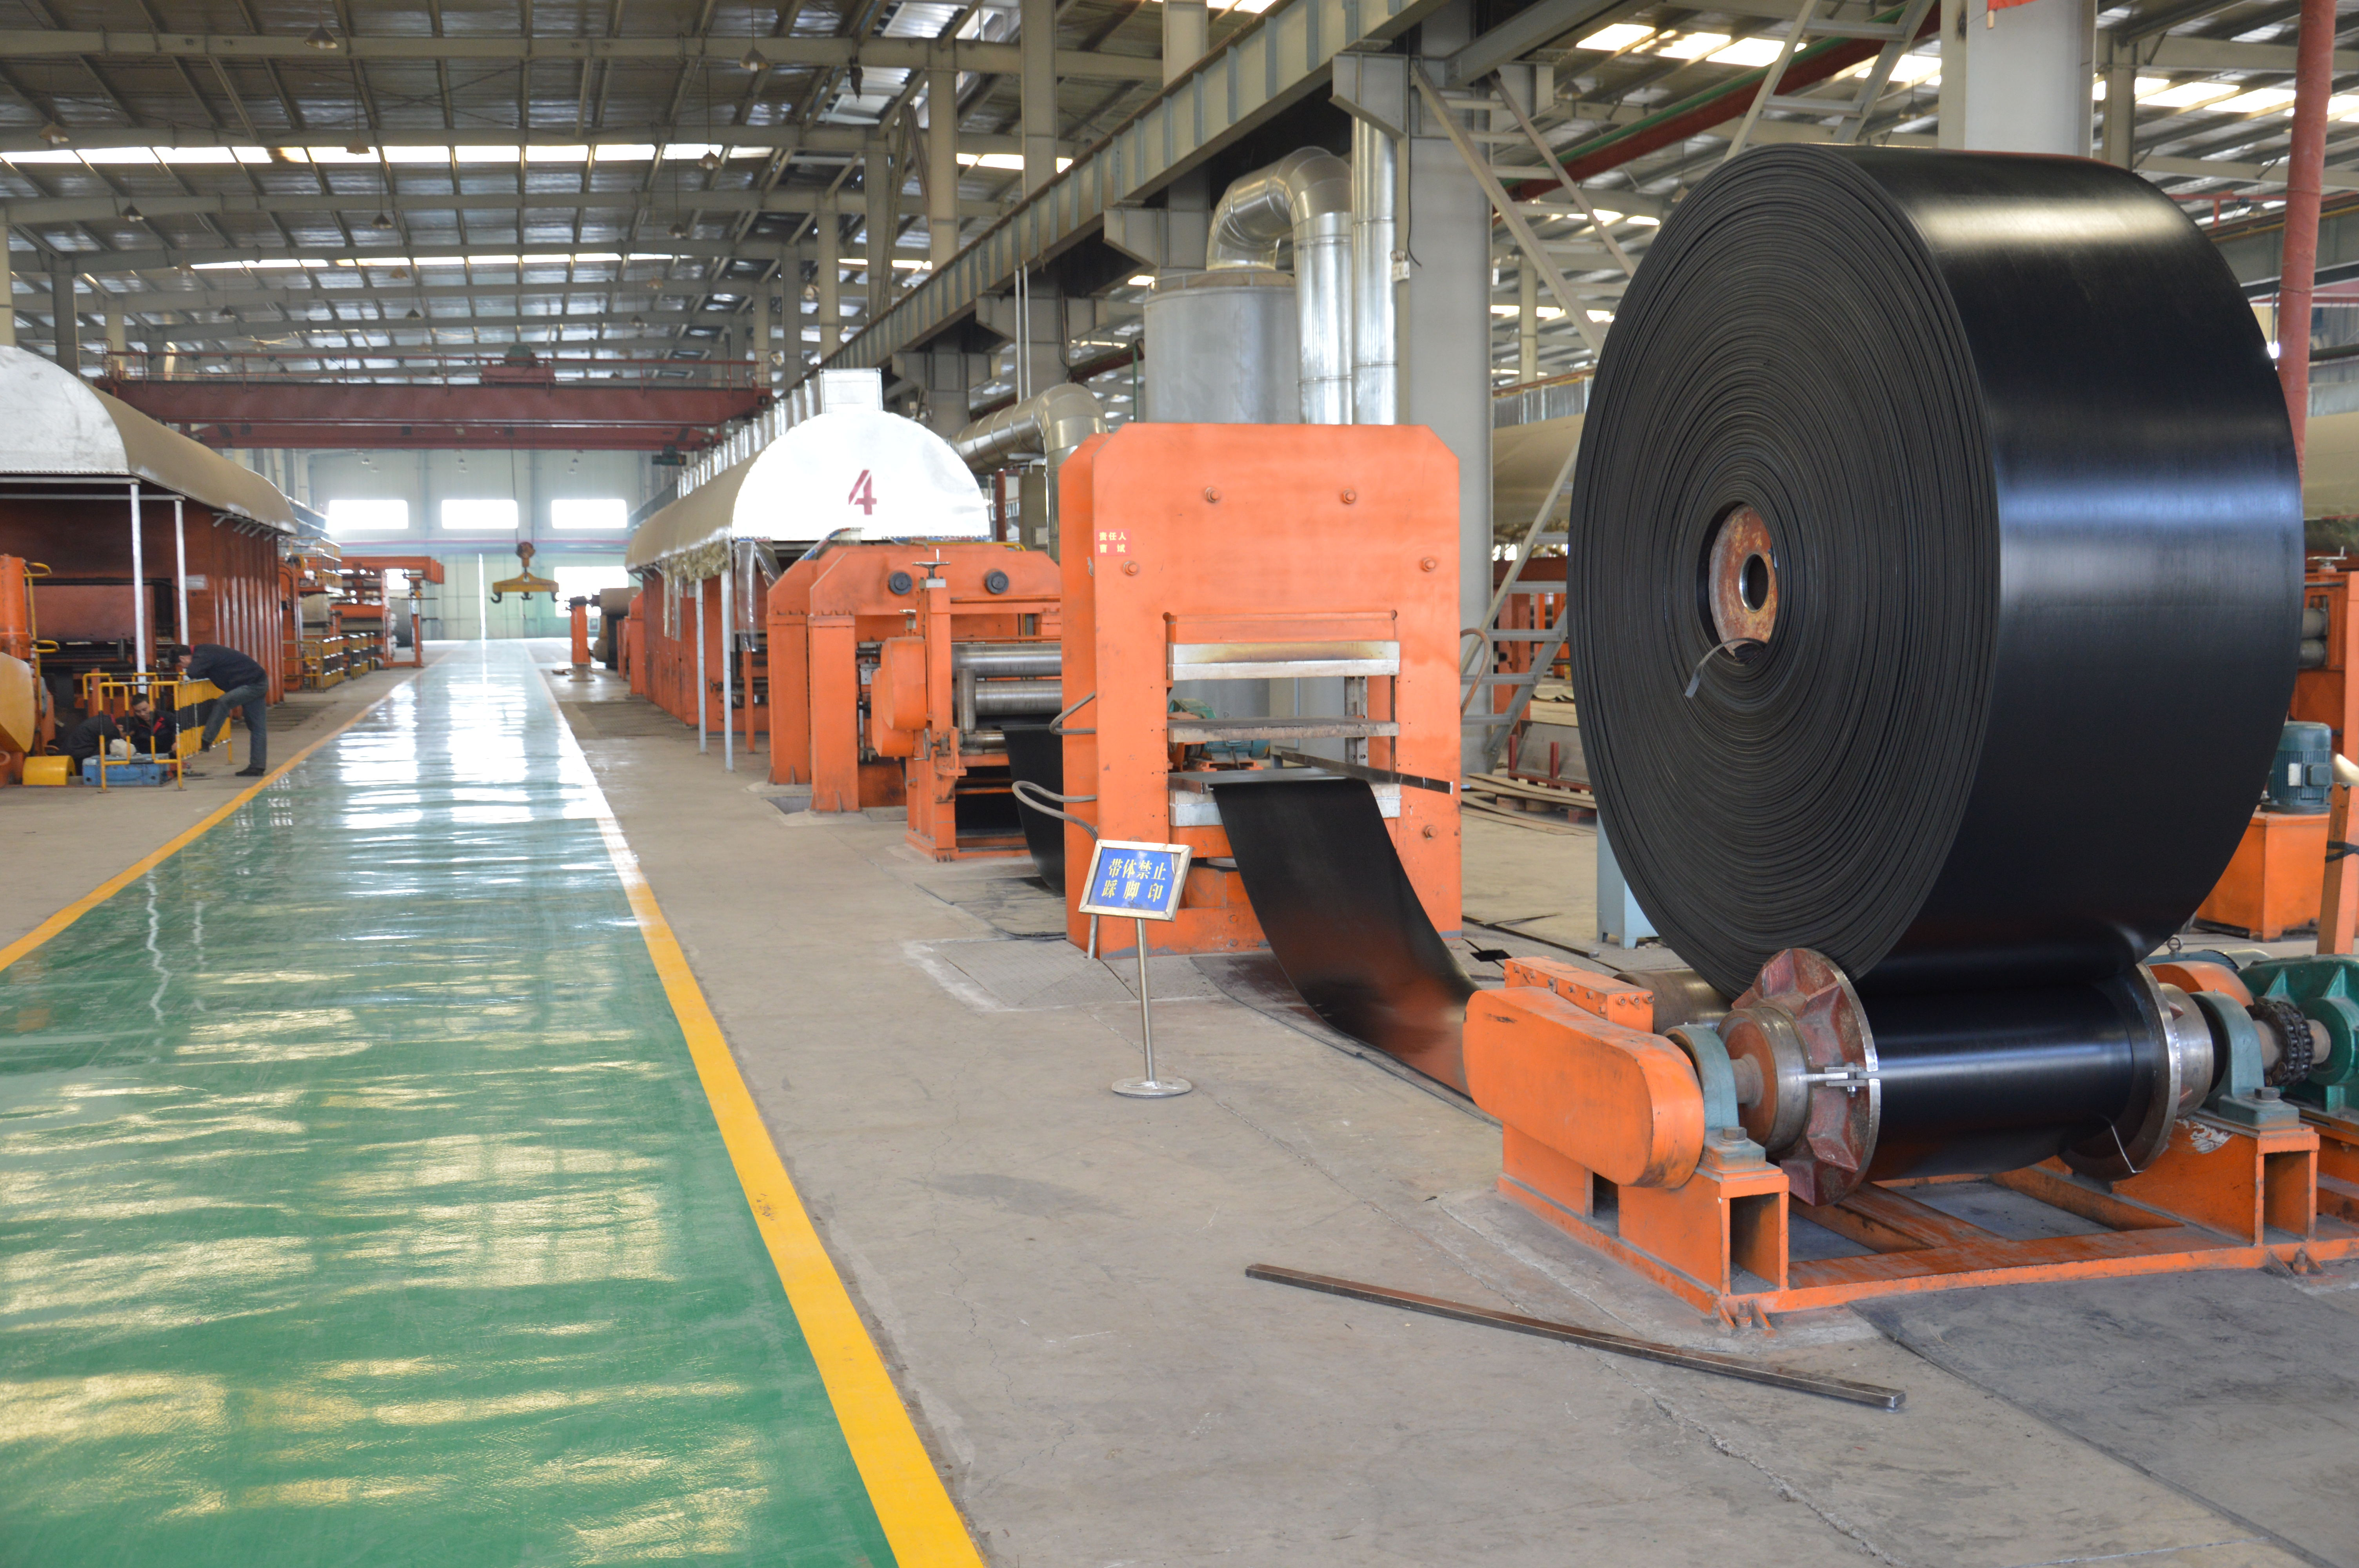 How should the different types of conveyor belts be